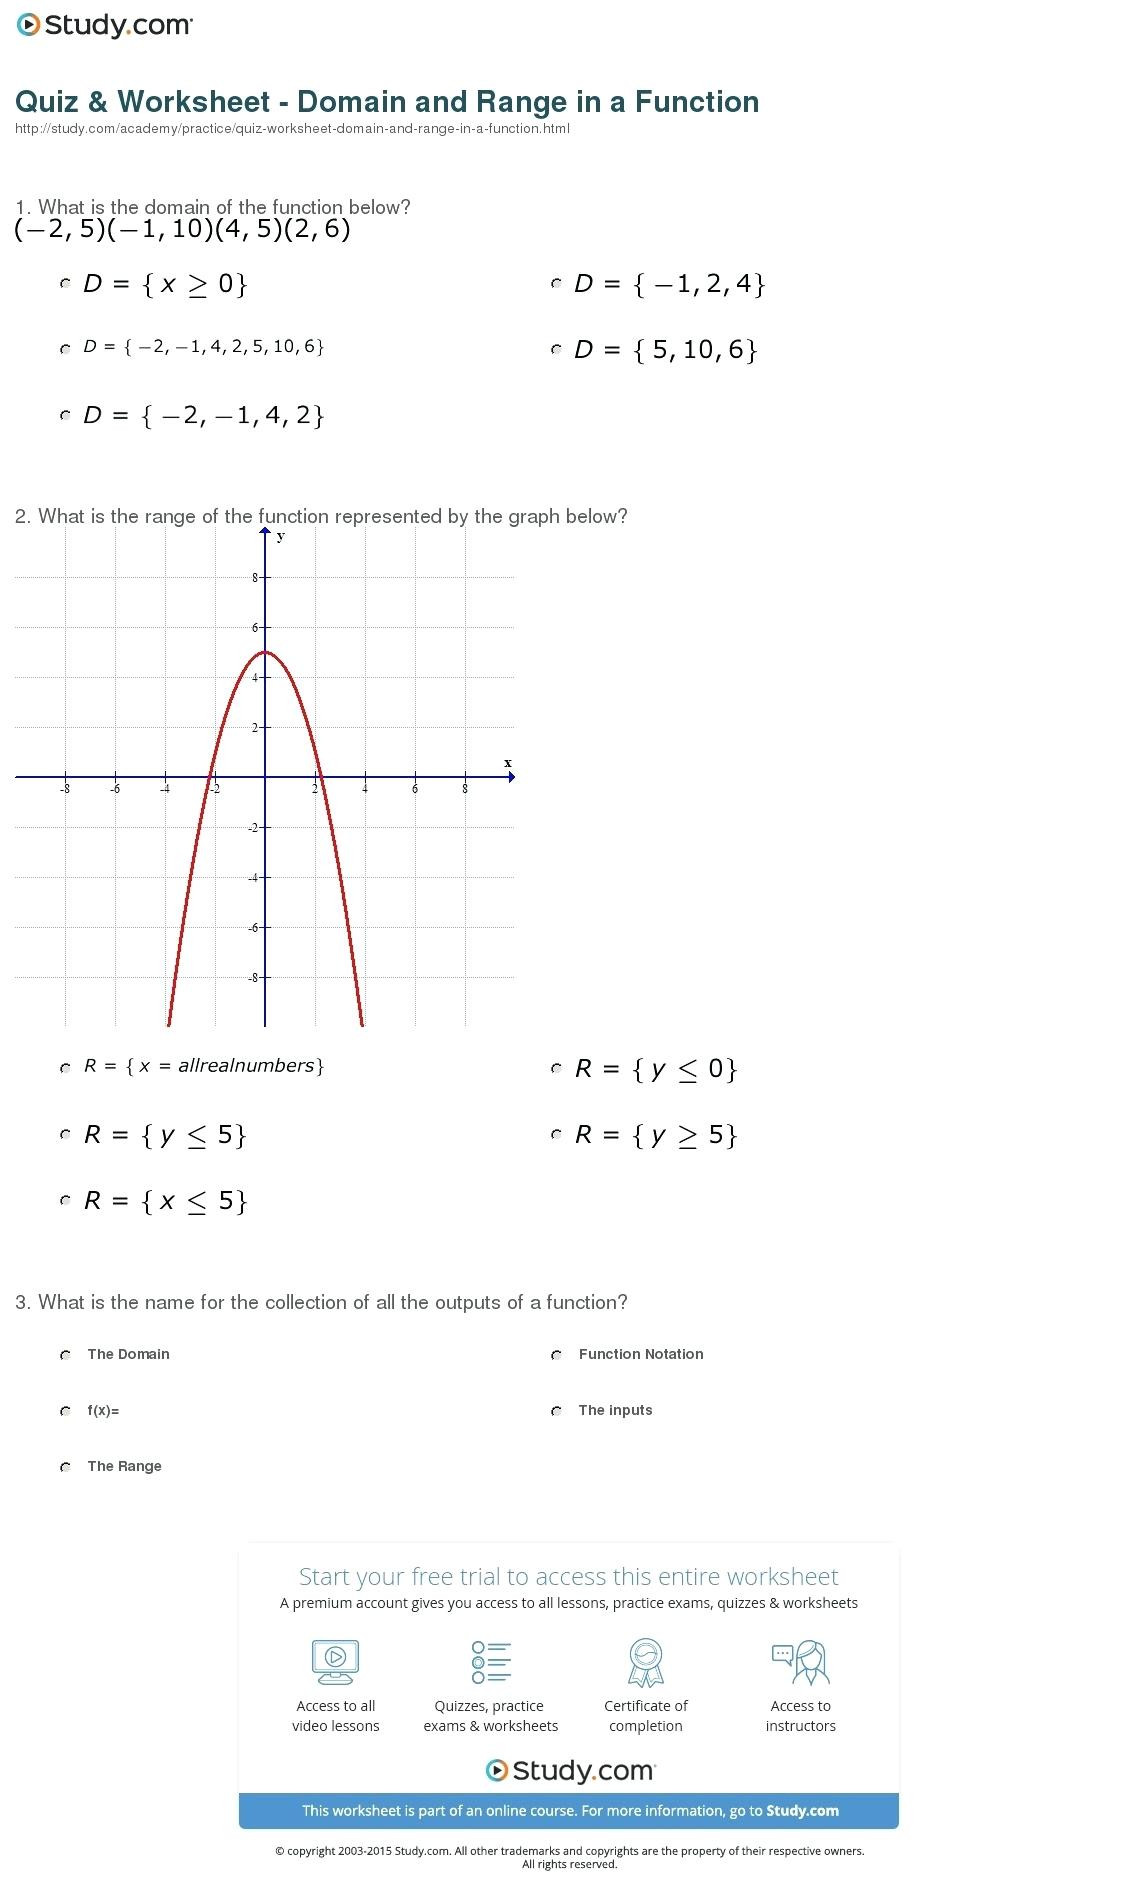 Algebra 1 Function Notation Worksheet Domain and Range Interval Notation Worksheet with Answers